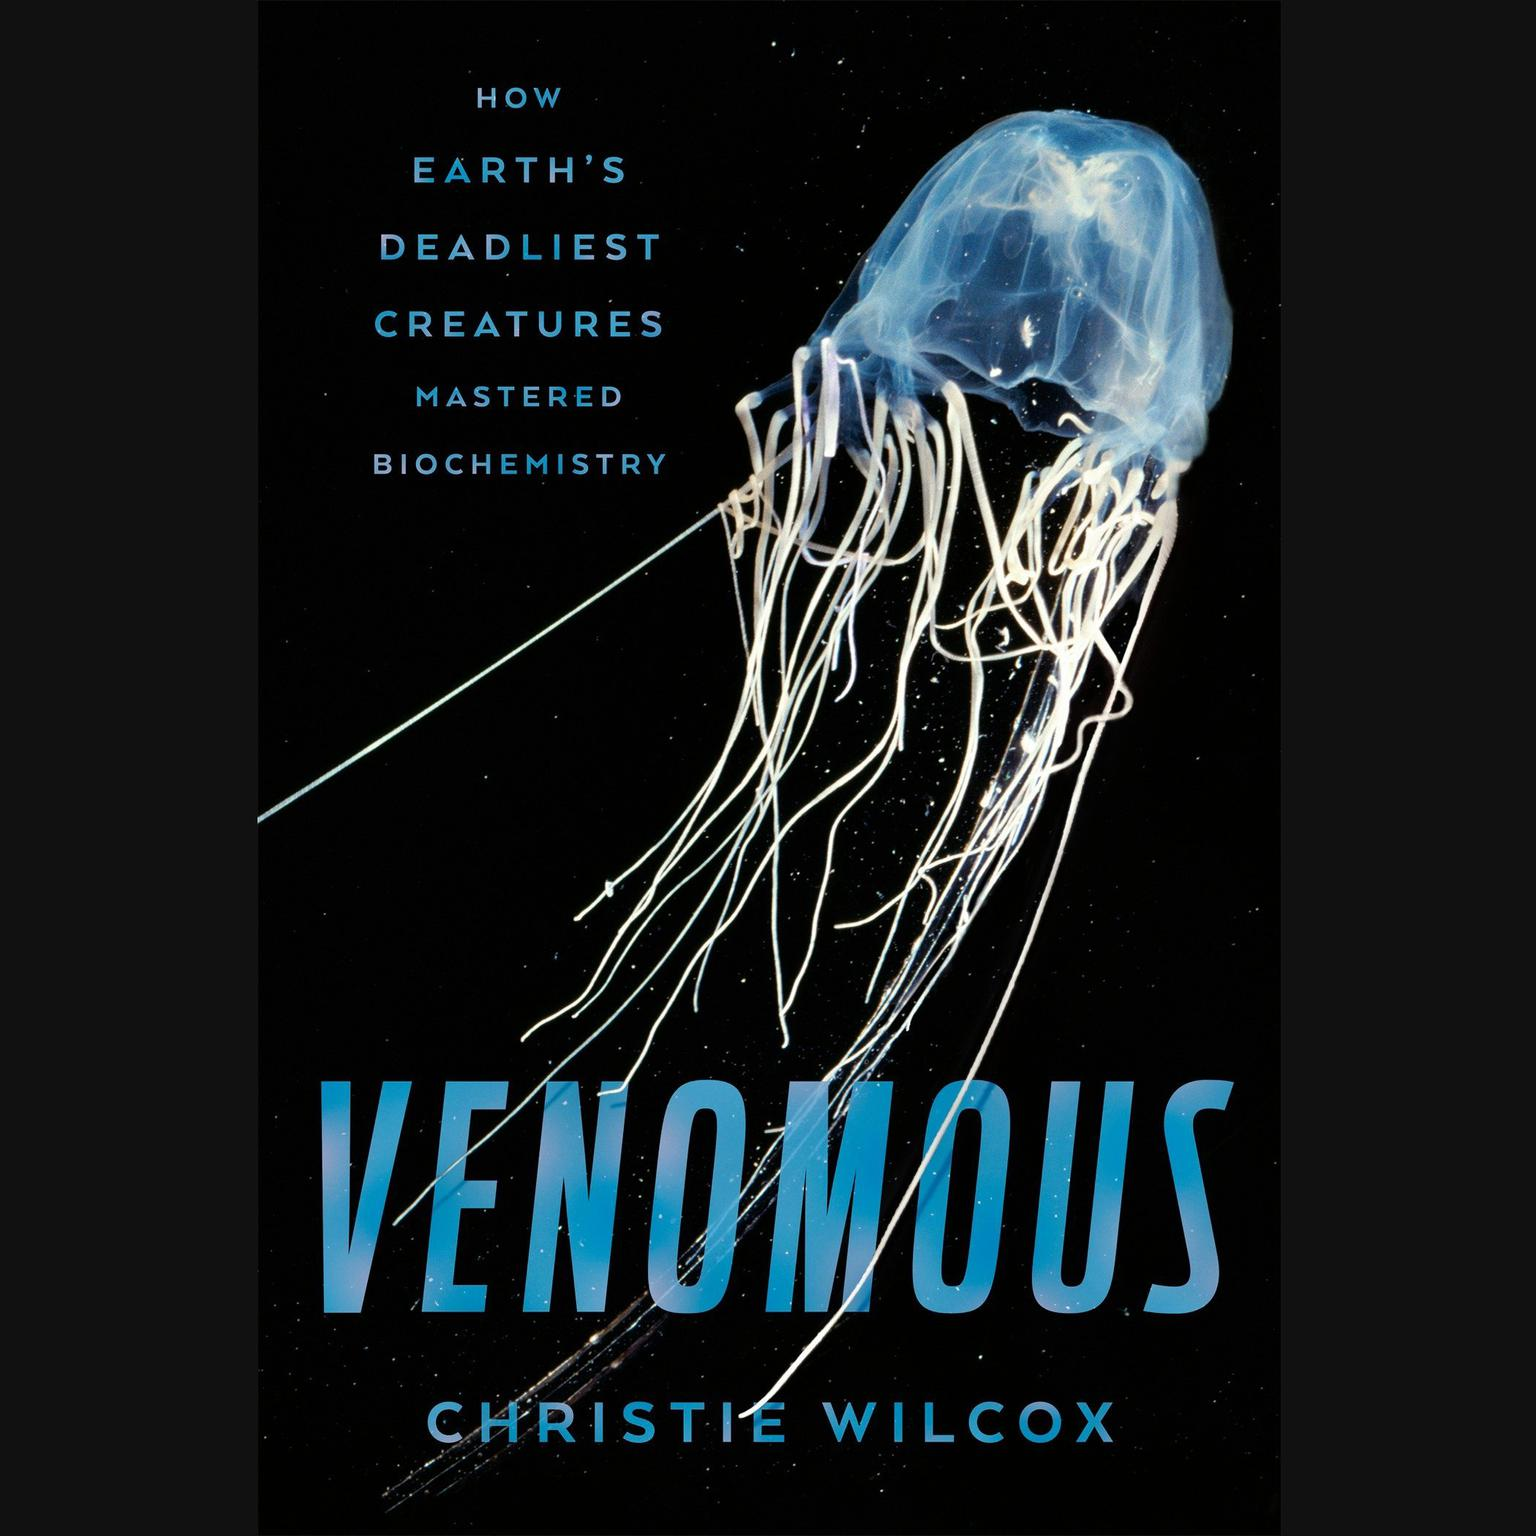 Printable Venomous: How Earth's Deadliest Creatures Mastered Biochemistry Audiobook Cover Art